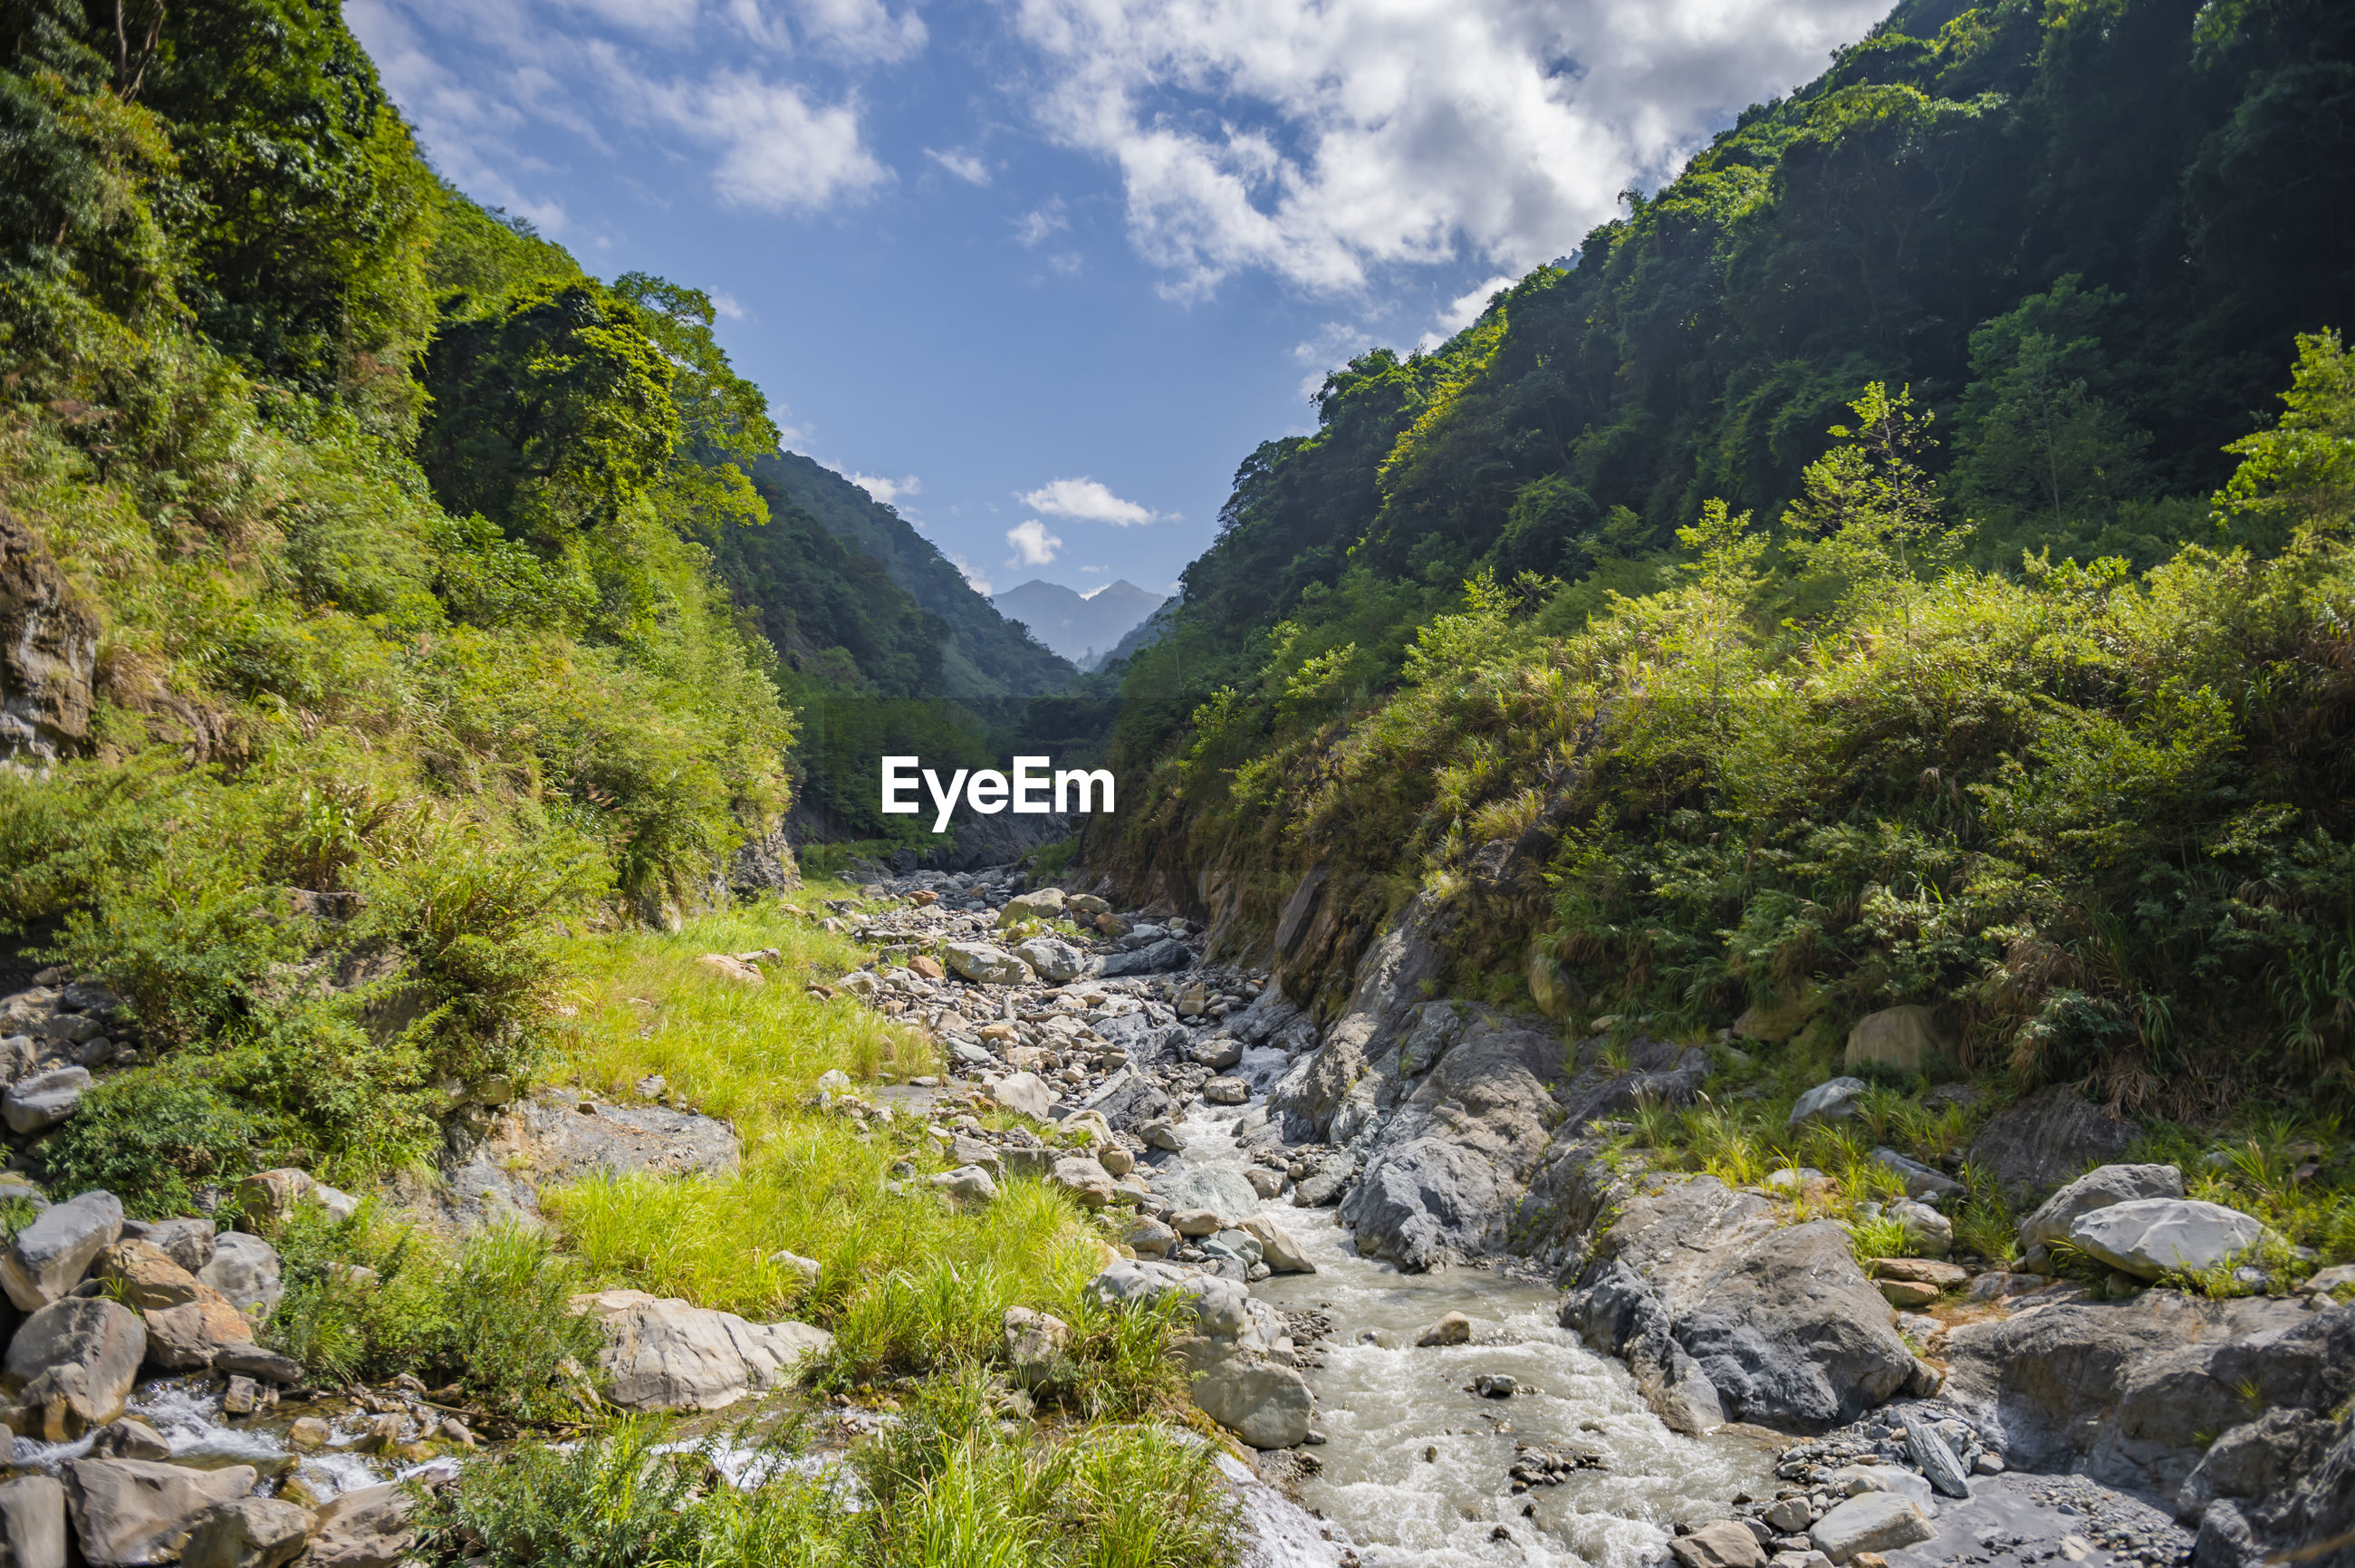 Scenic view of stream amidst trees against sky